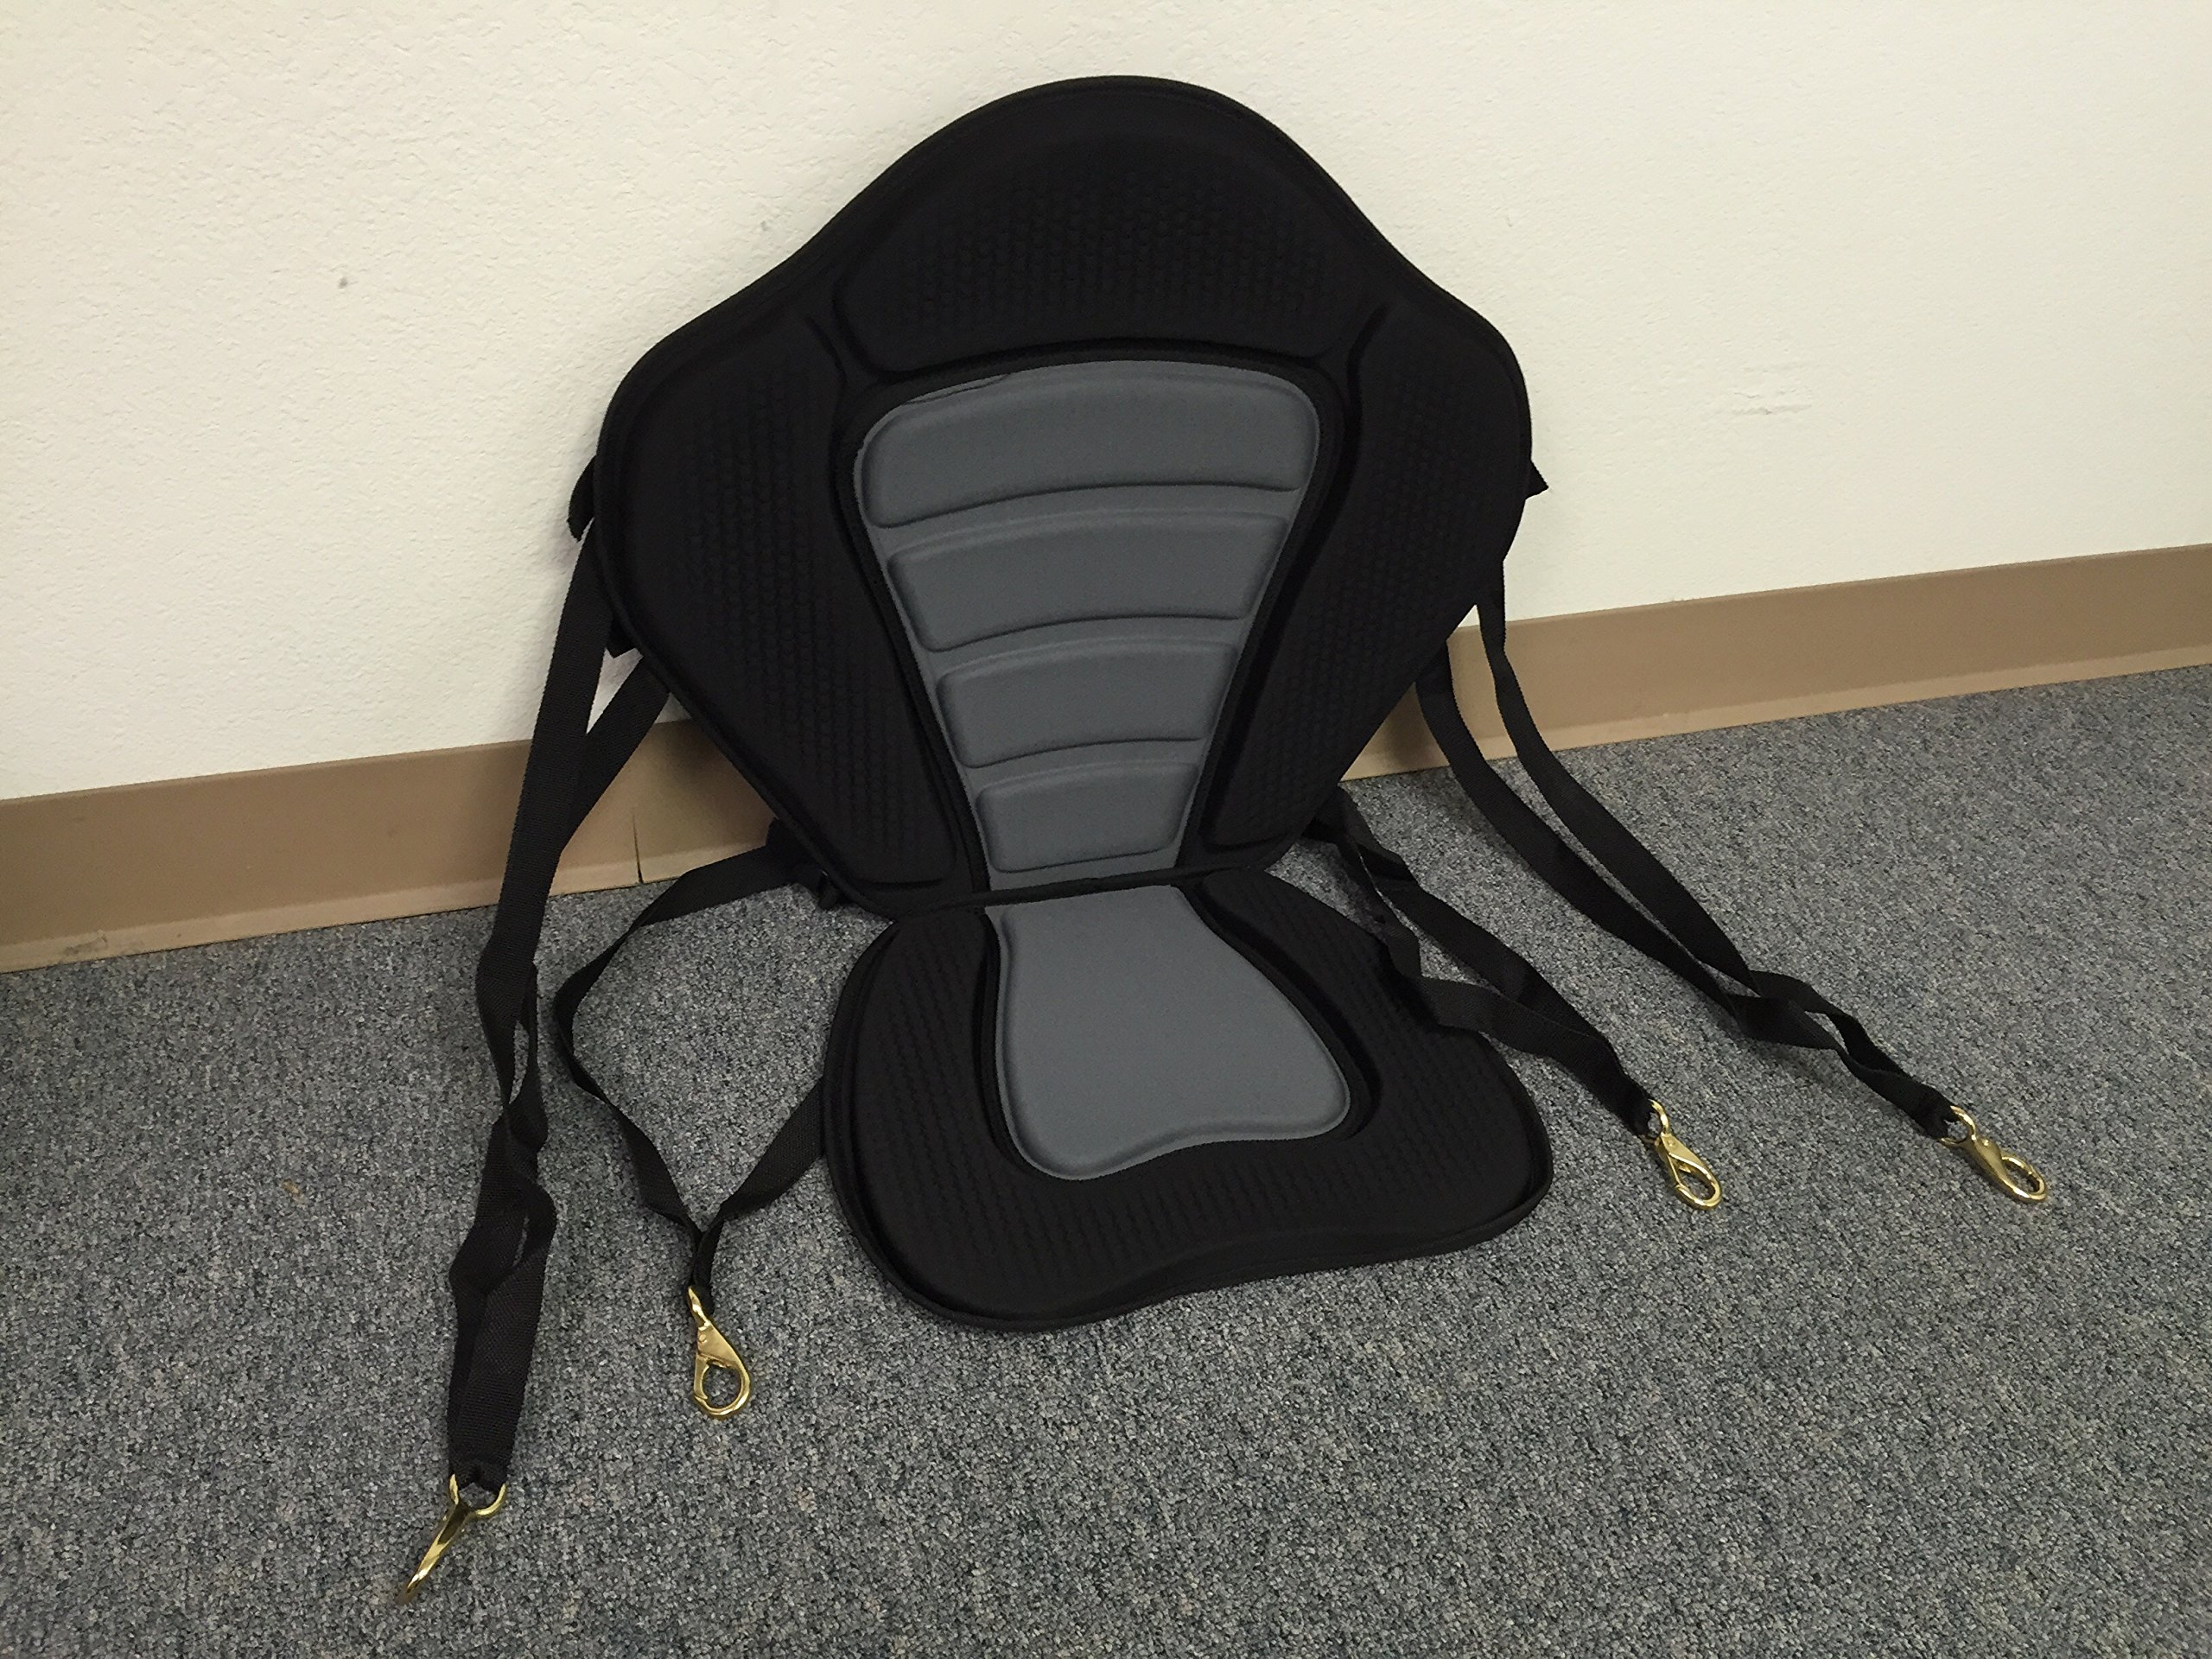 Pactrade Marine Adjustable Padded Deluxe Kayak Seat Detachable Back Backpack/Bag Canoe Backrest by Pactrade Marine